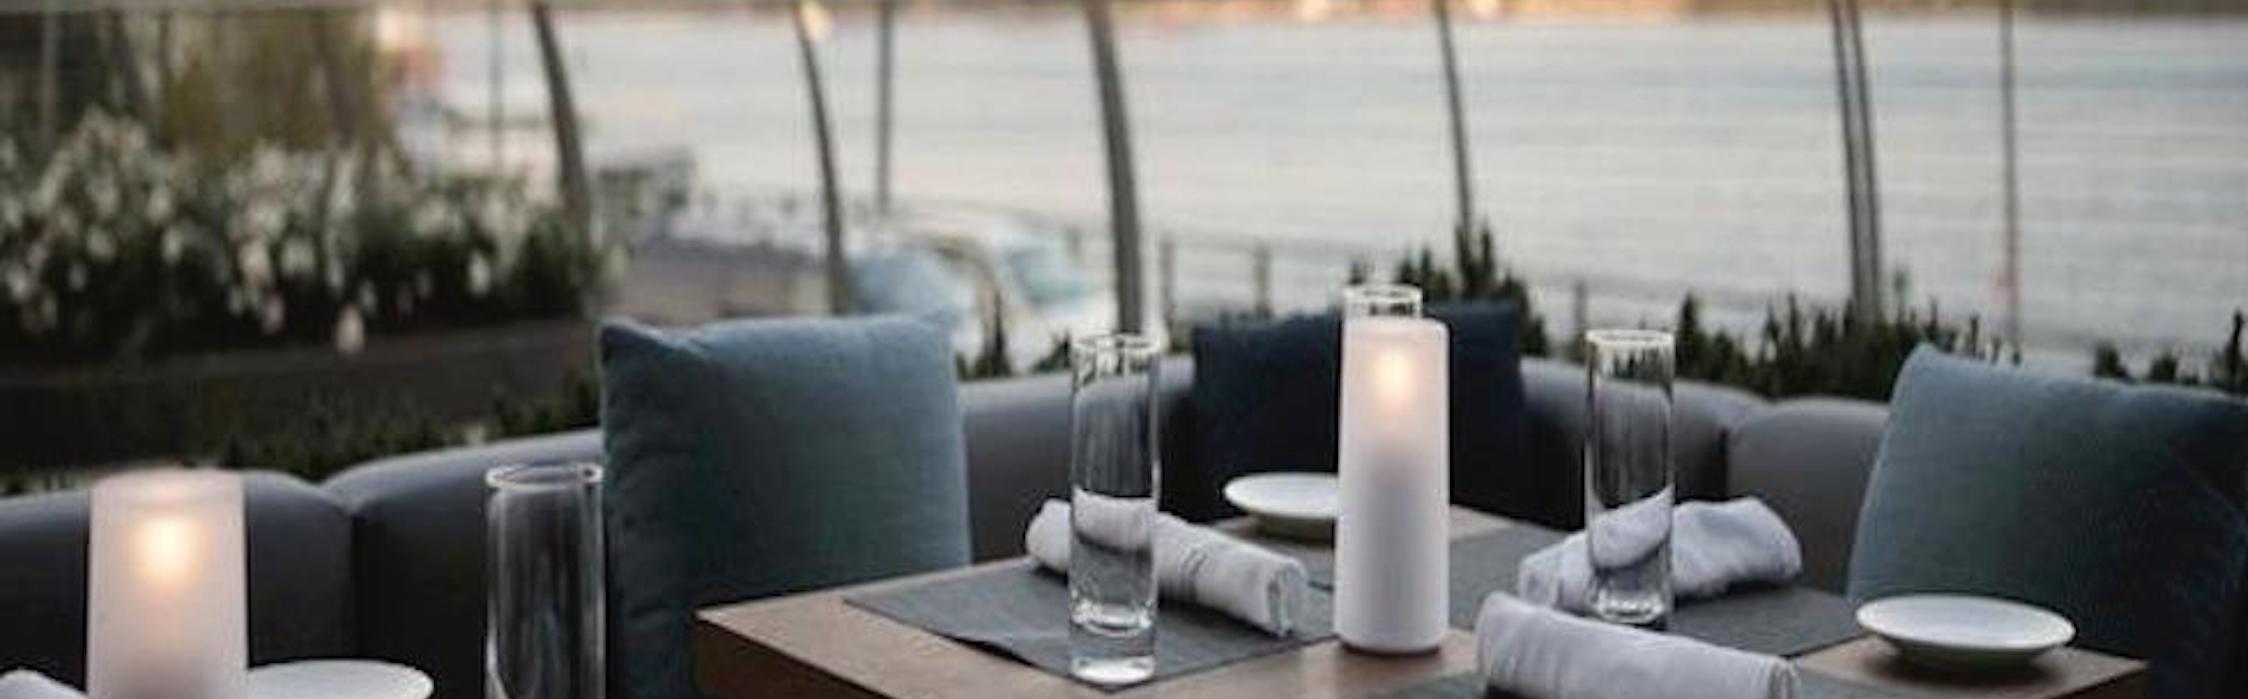 Waterfront Dining at Riverpark. Source: riverparknyc.com